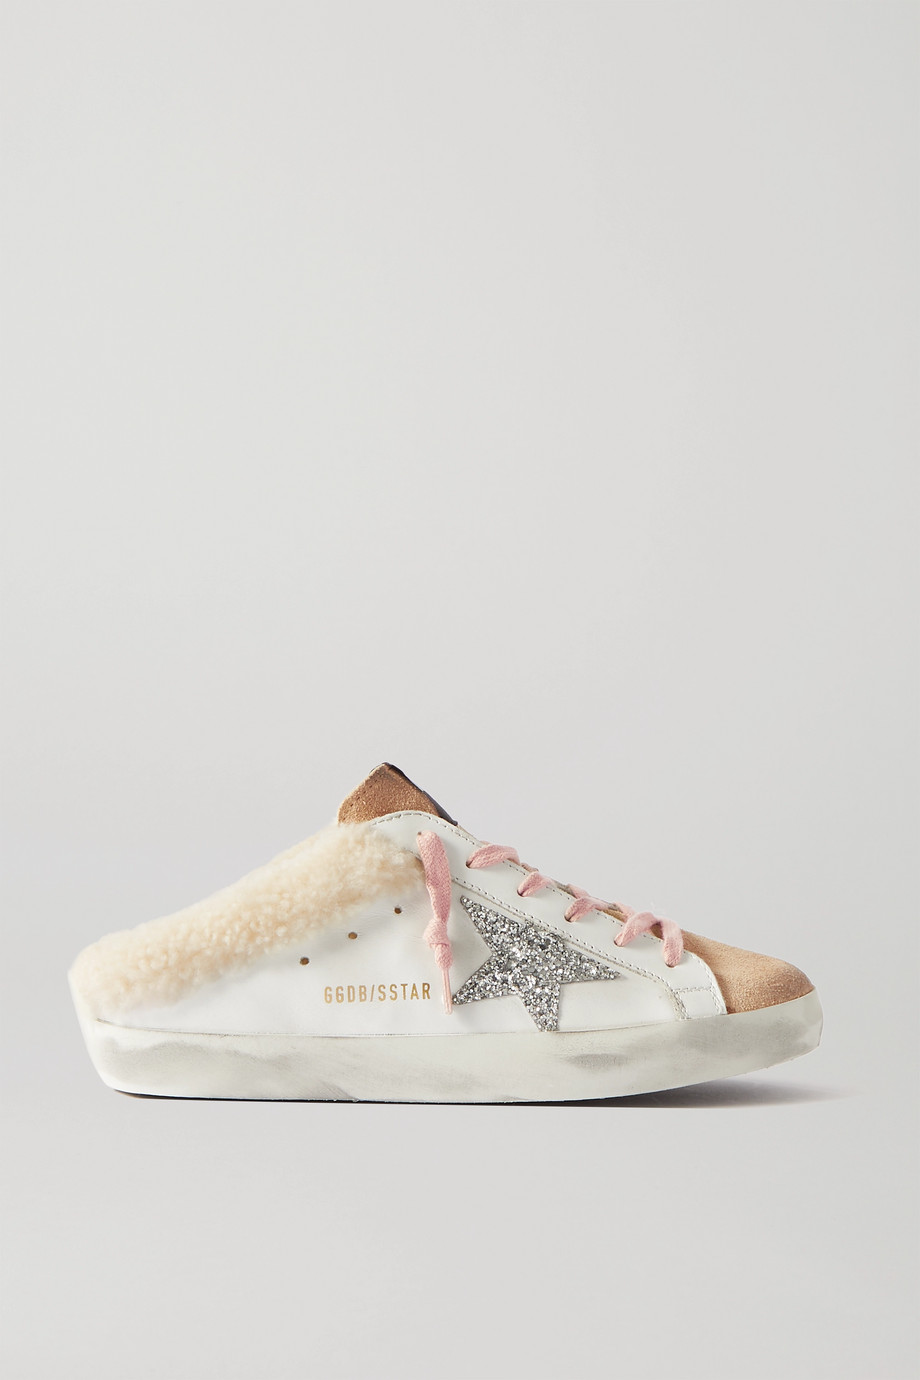 GOLDEN GOOSE Sabot glittered distressed leather, suede and shearling slip-on sneakers